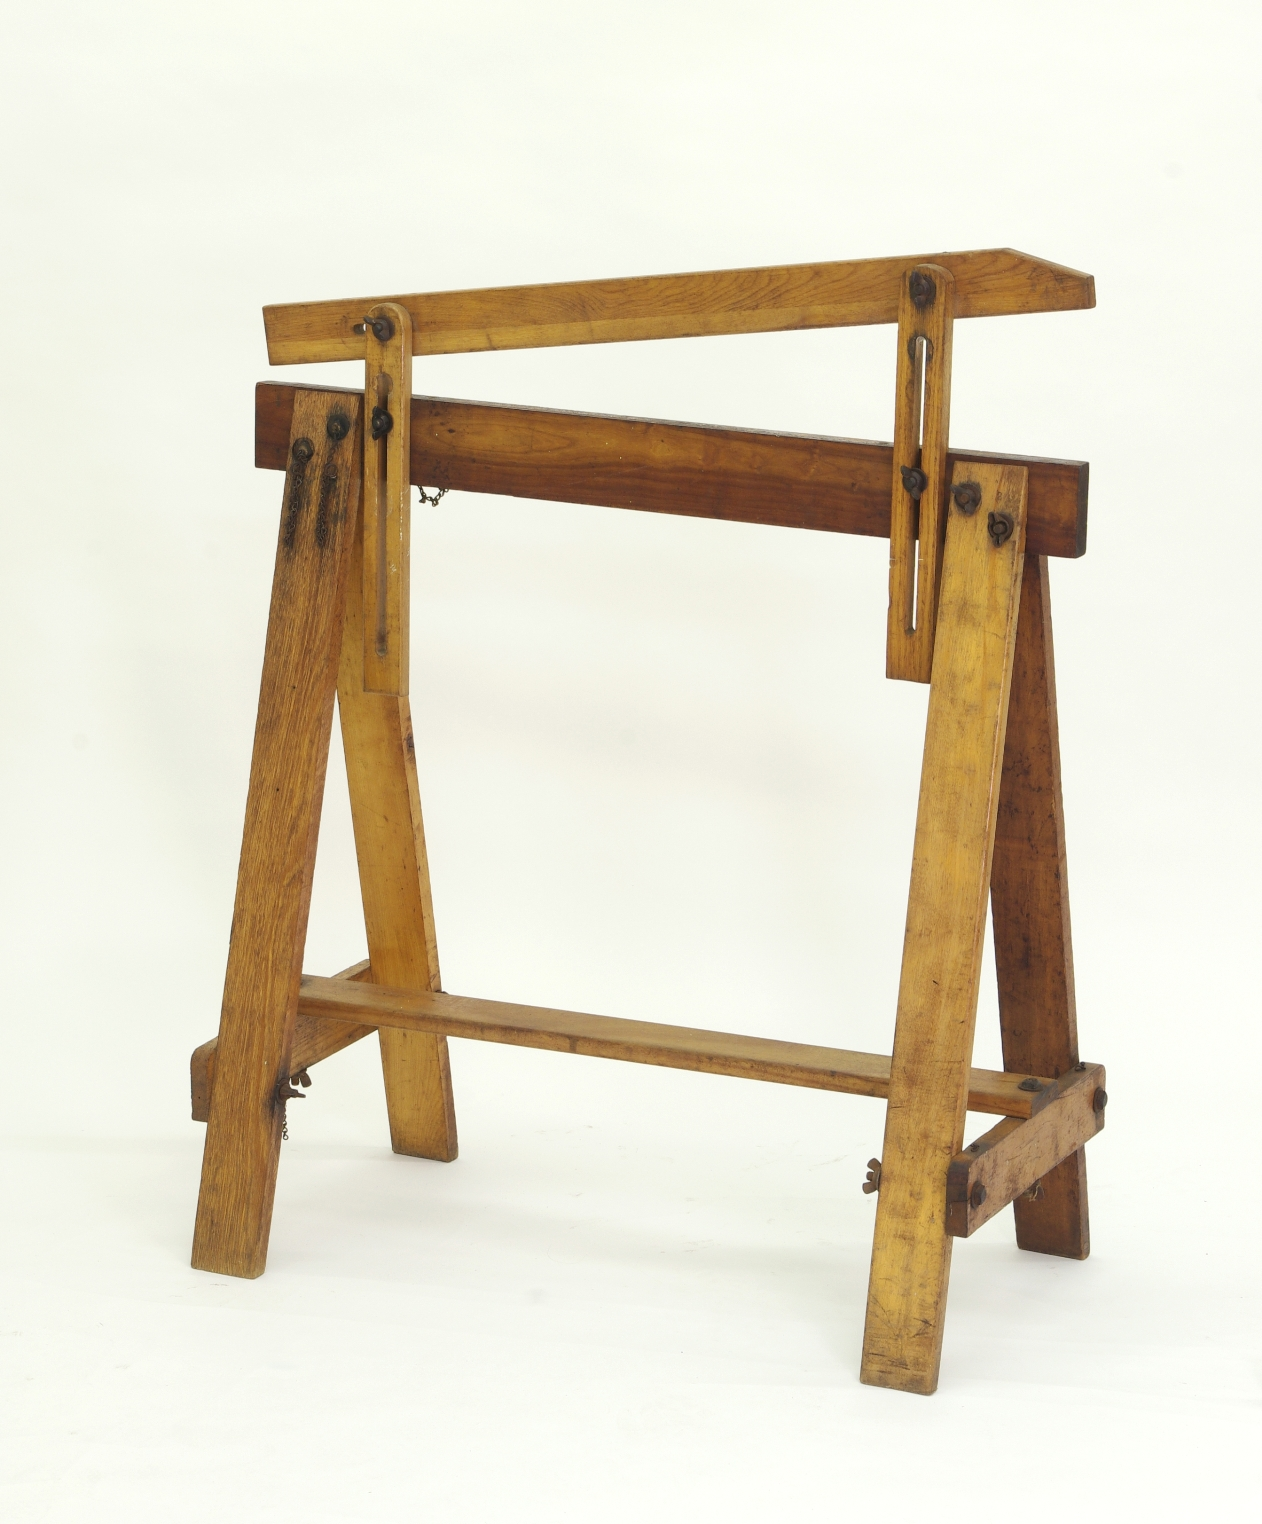 View 5: Pair of Adjustable Sawhorses c. 1920